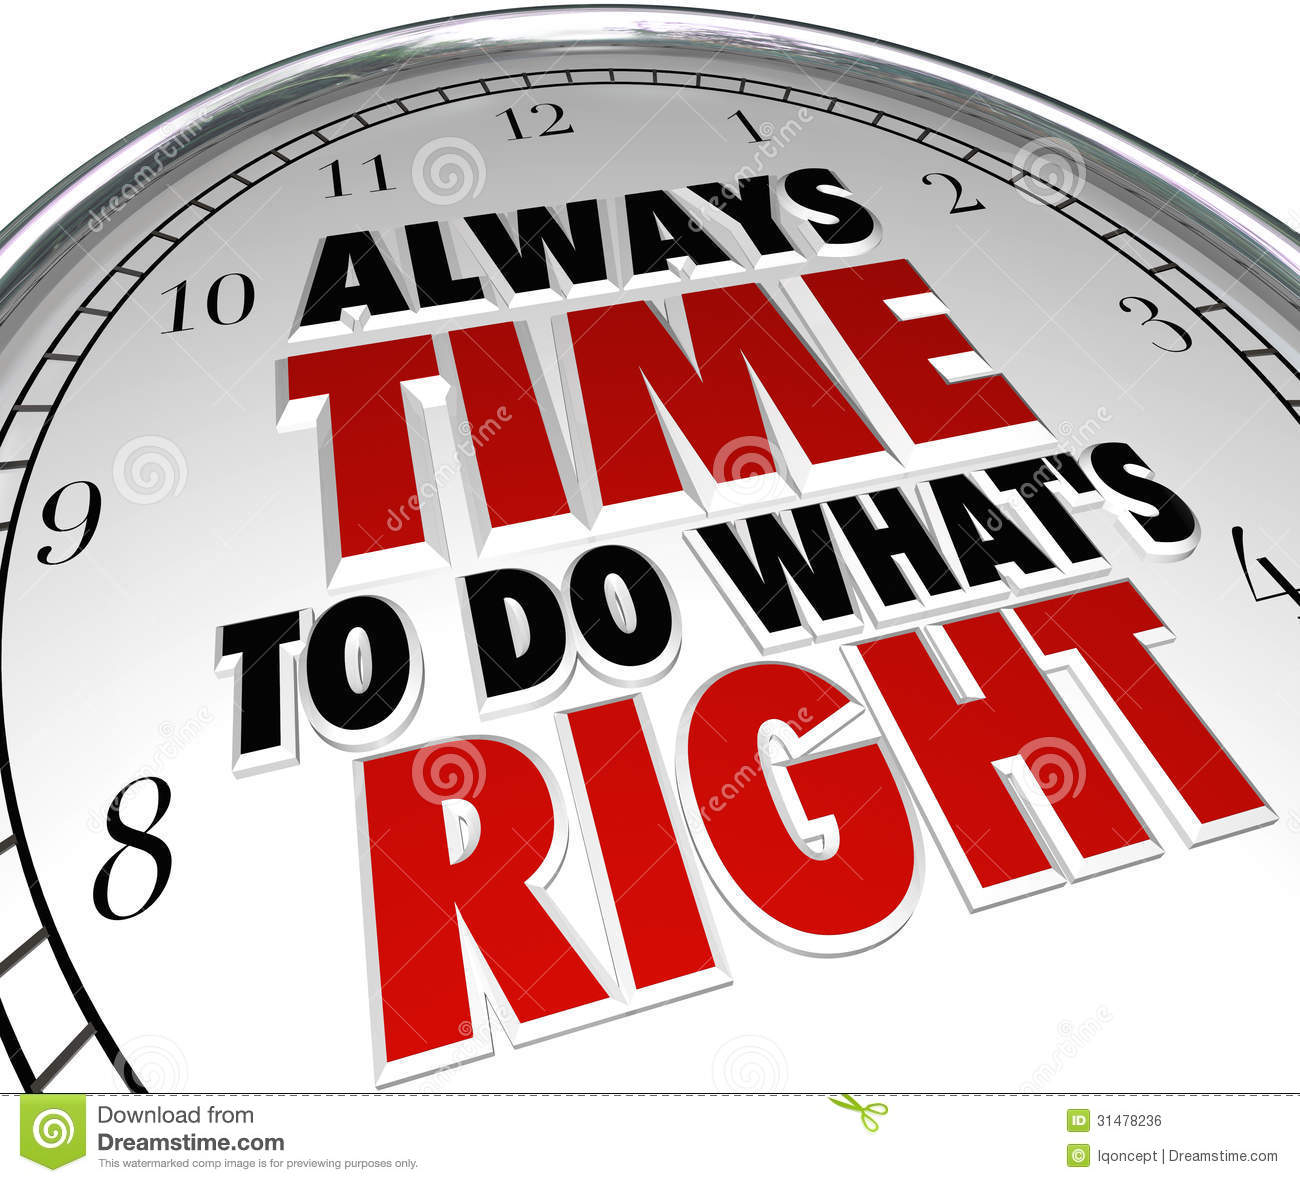 Always Time To Do What39;s Right Saying Clock Quote Royalty Free Stock